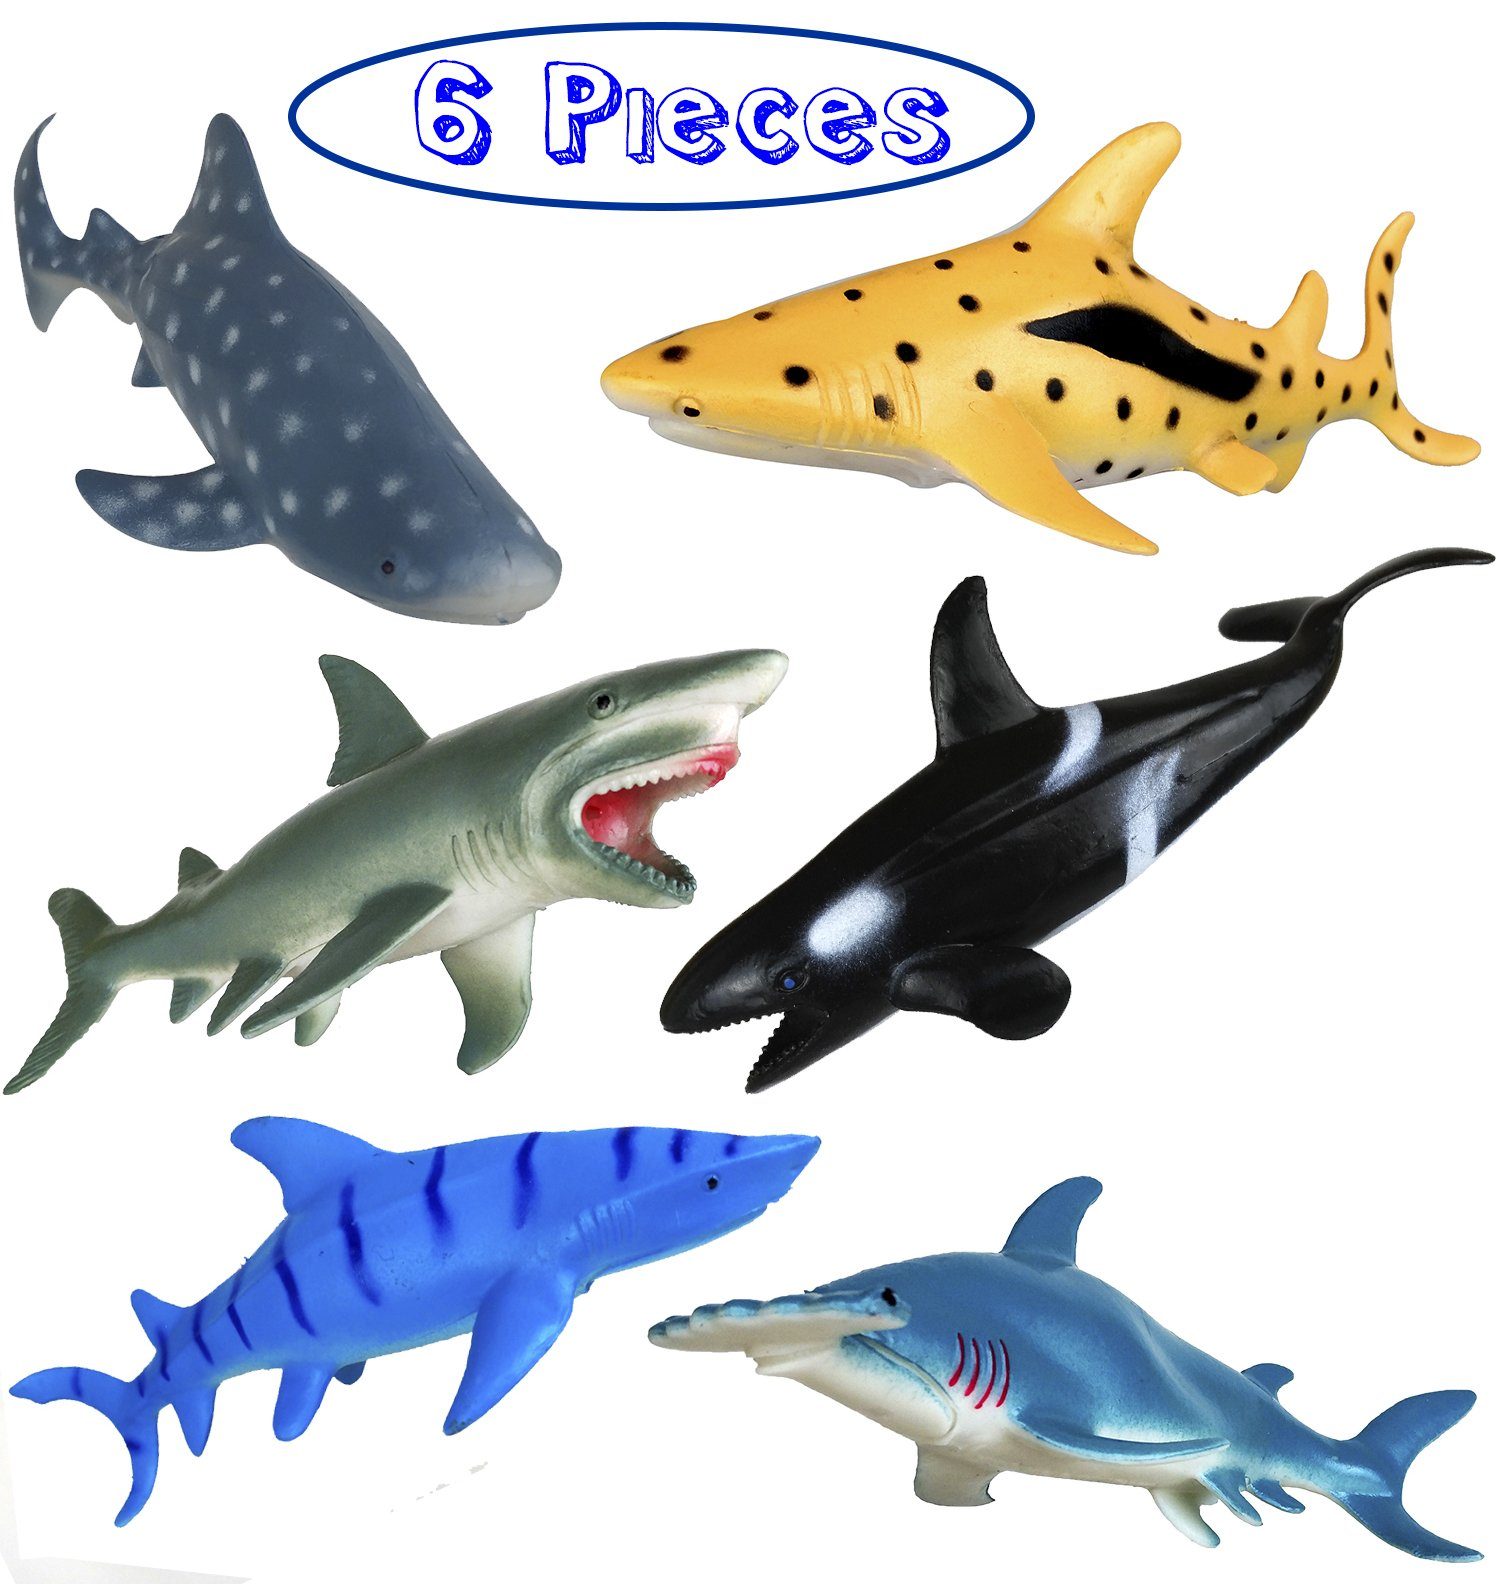 Shark Toy Figures 7 Inches - Ocean Animals, Bath Toys Rubber Figures - 6 Pieces Set